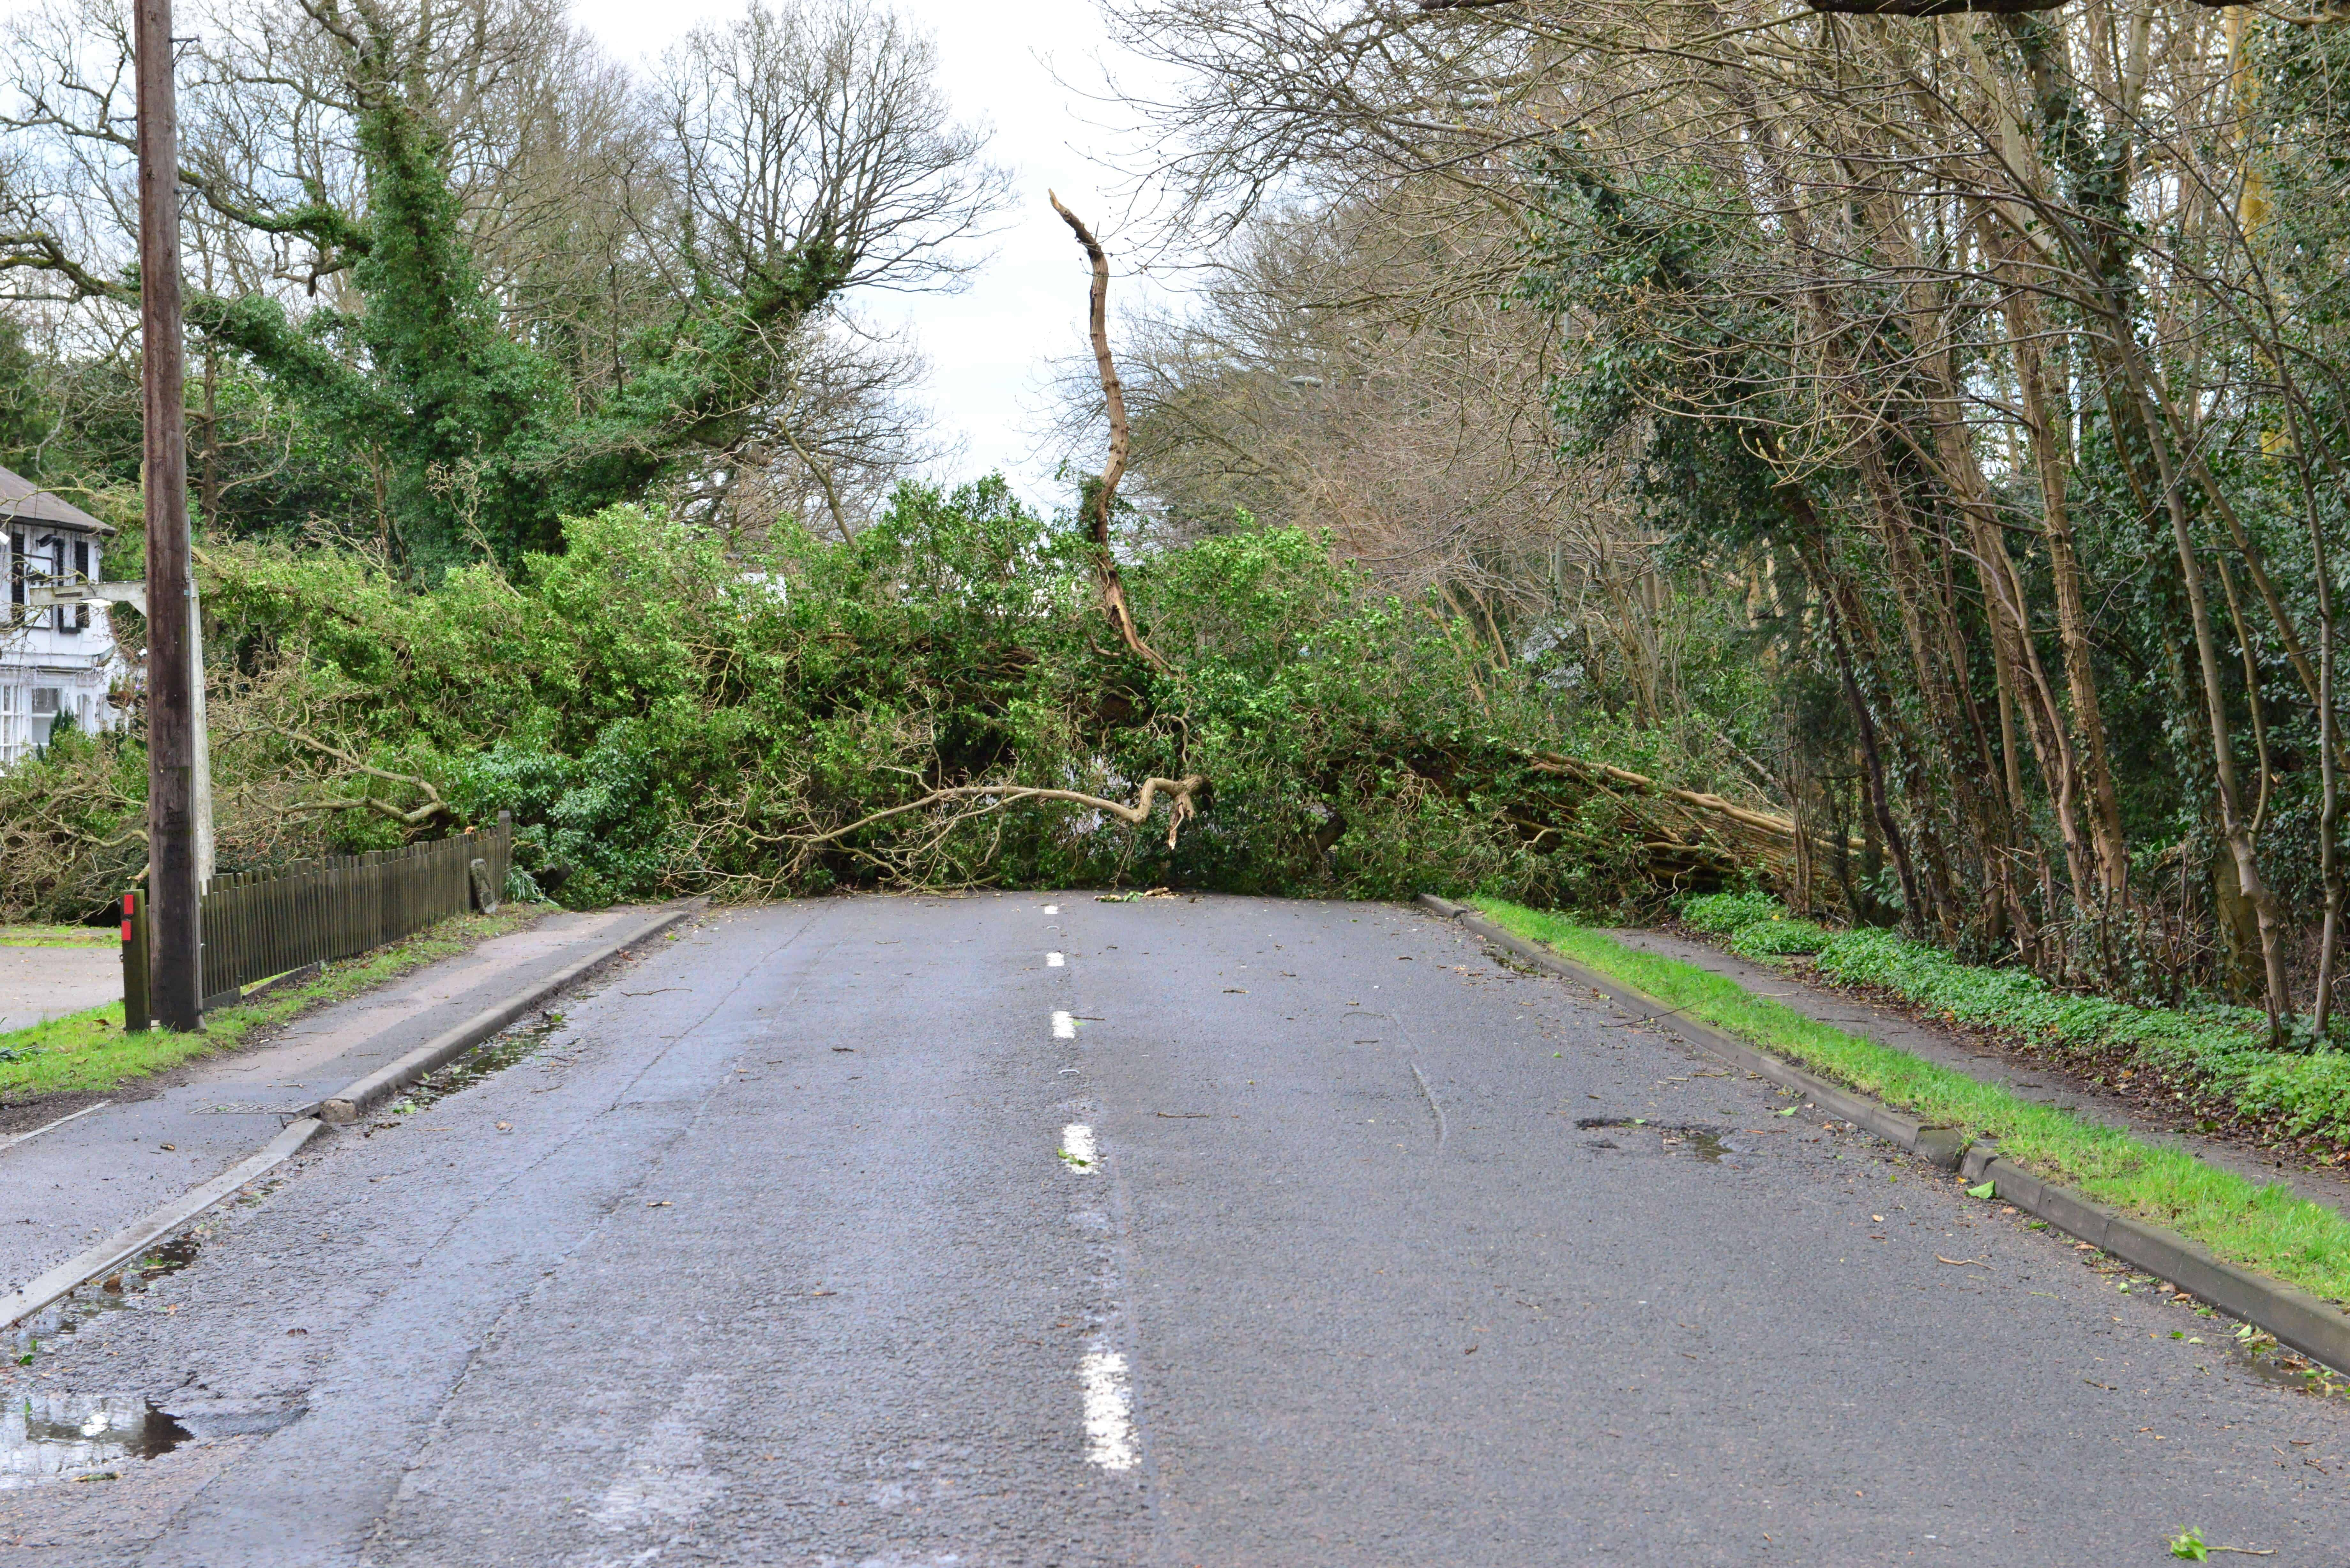 Tree Fallen into Road